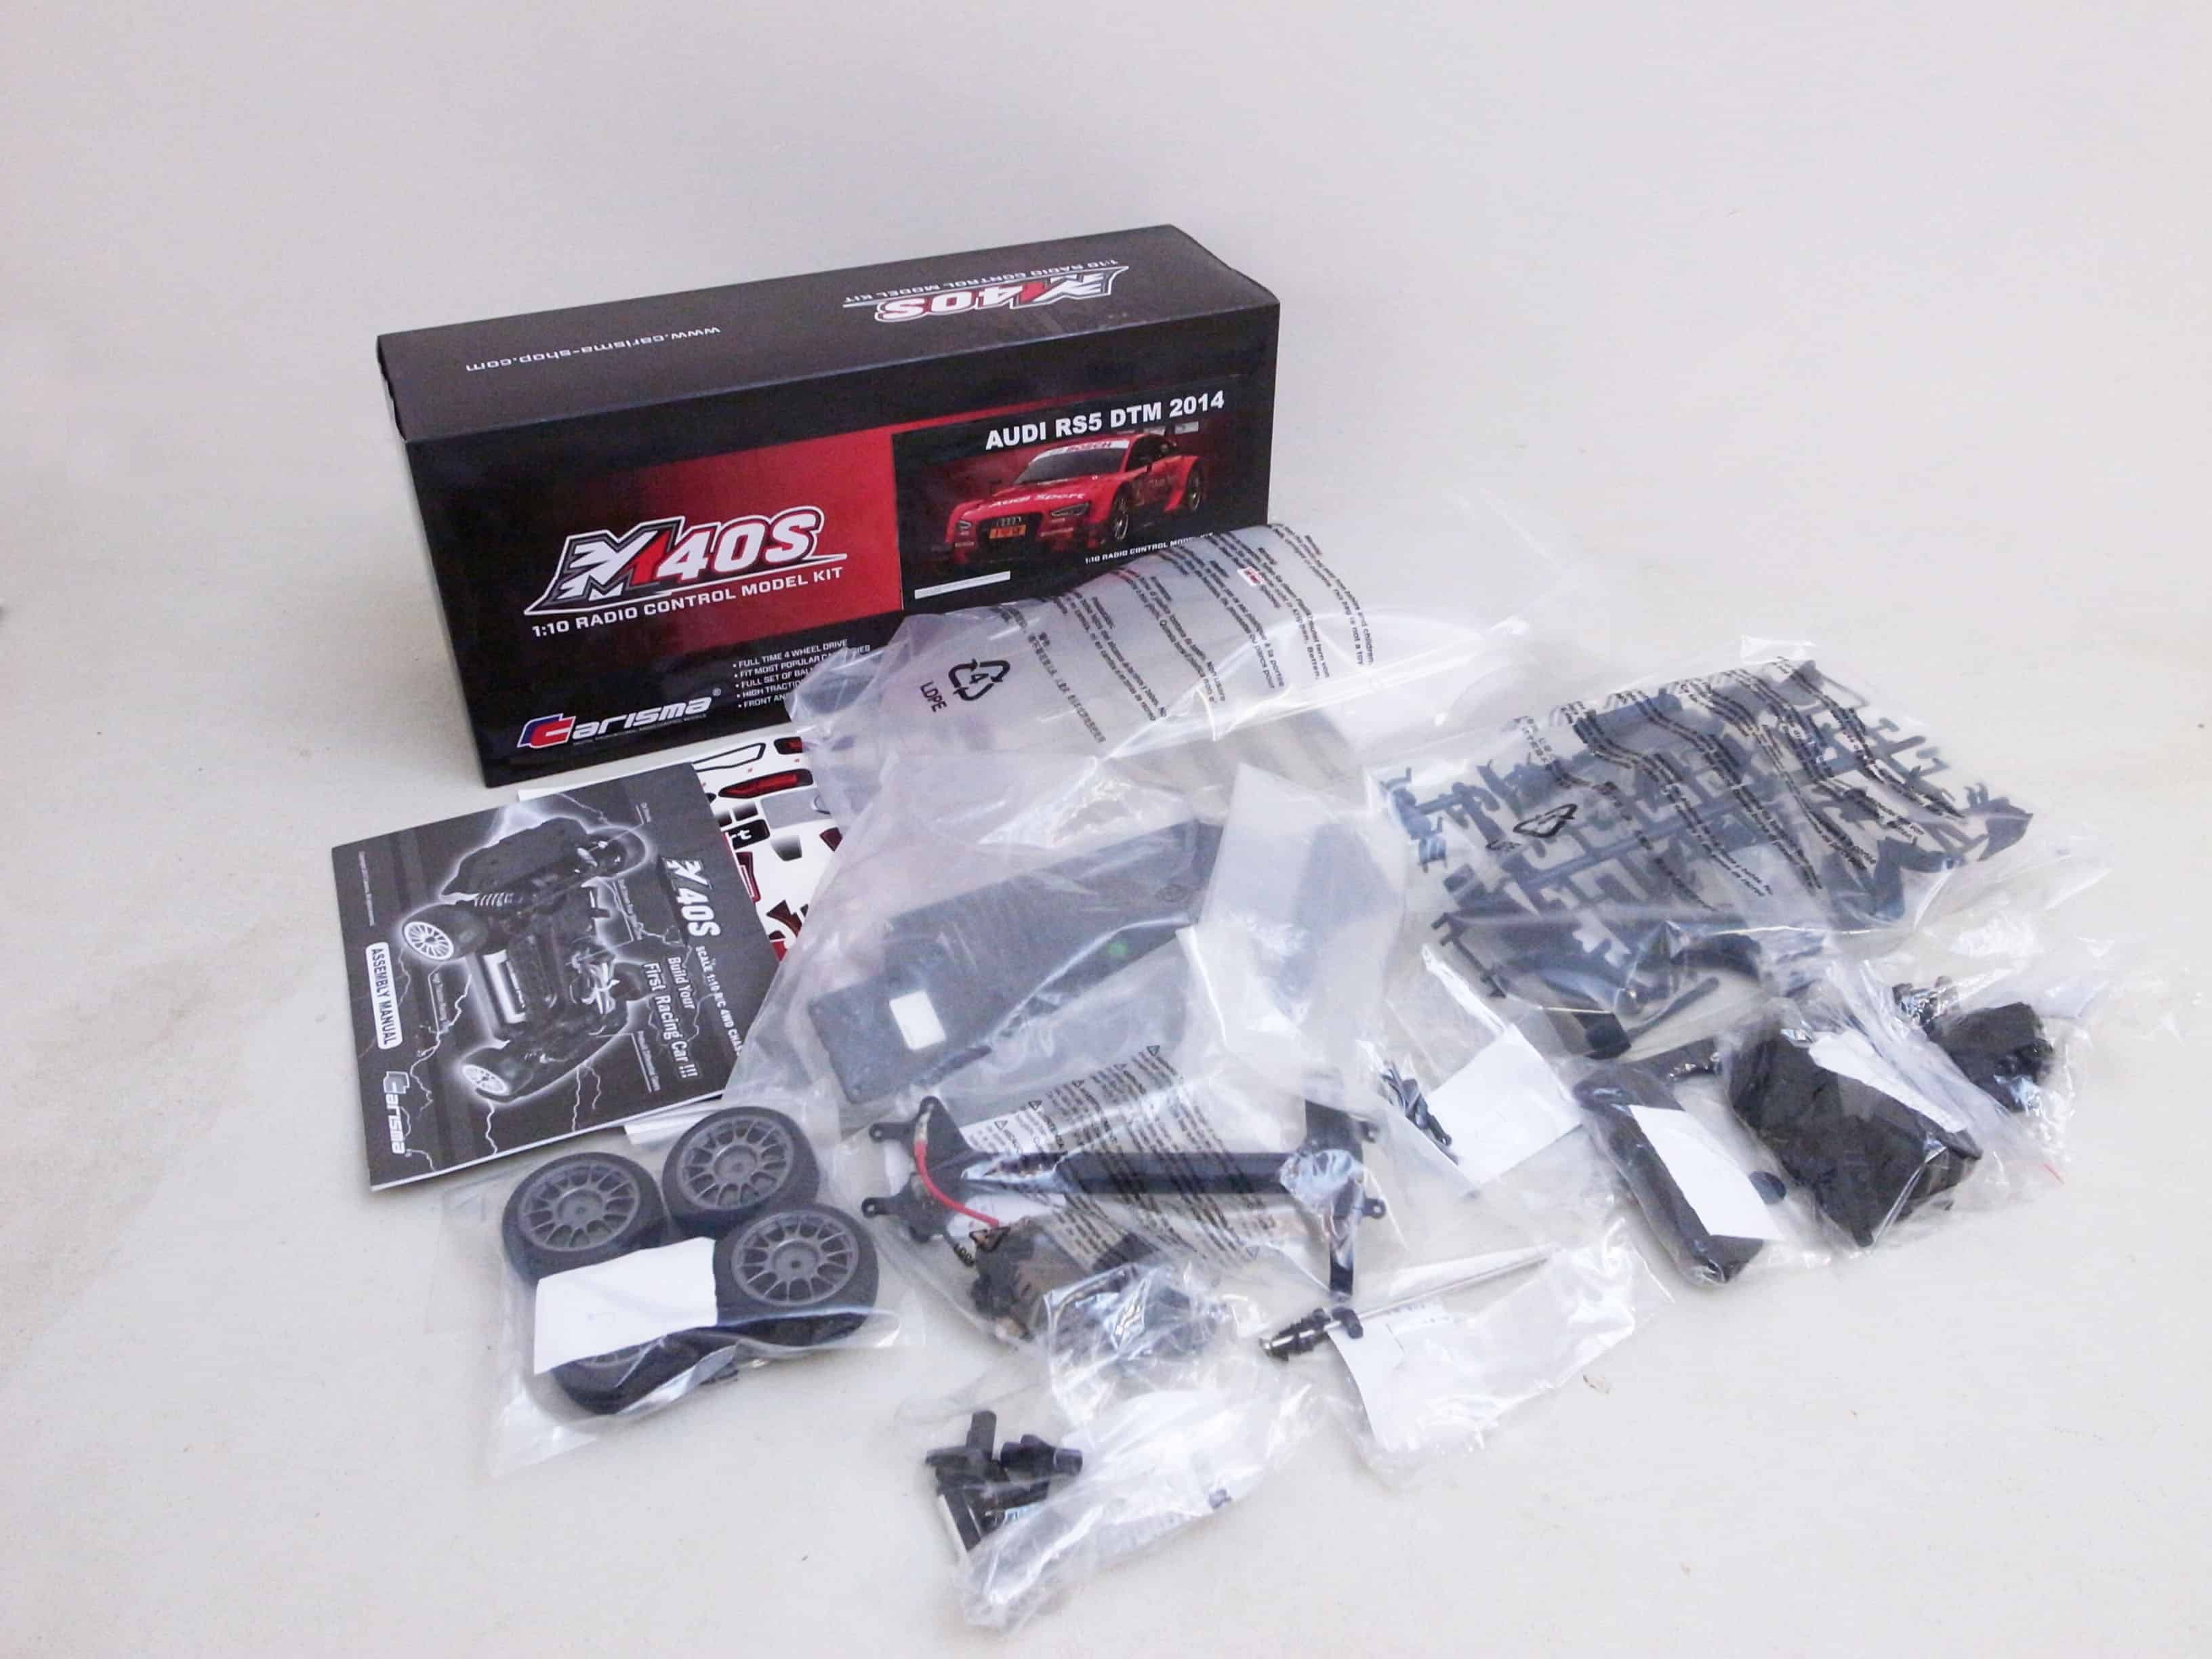 Carisma M40S Kit - What's In the Box